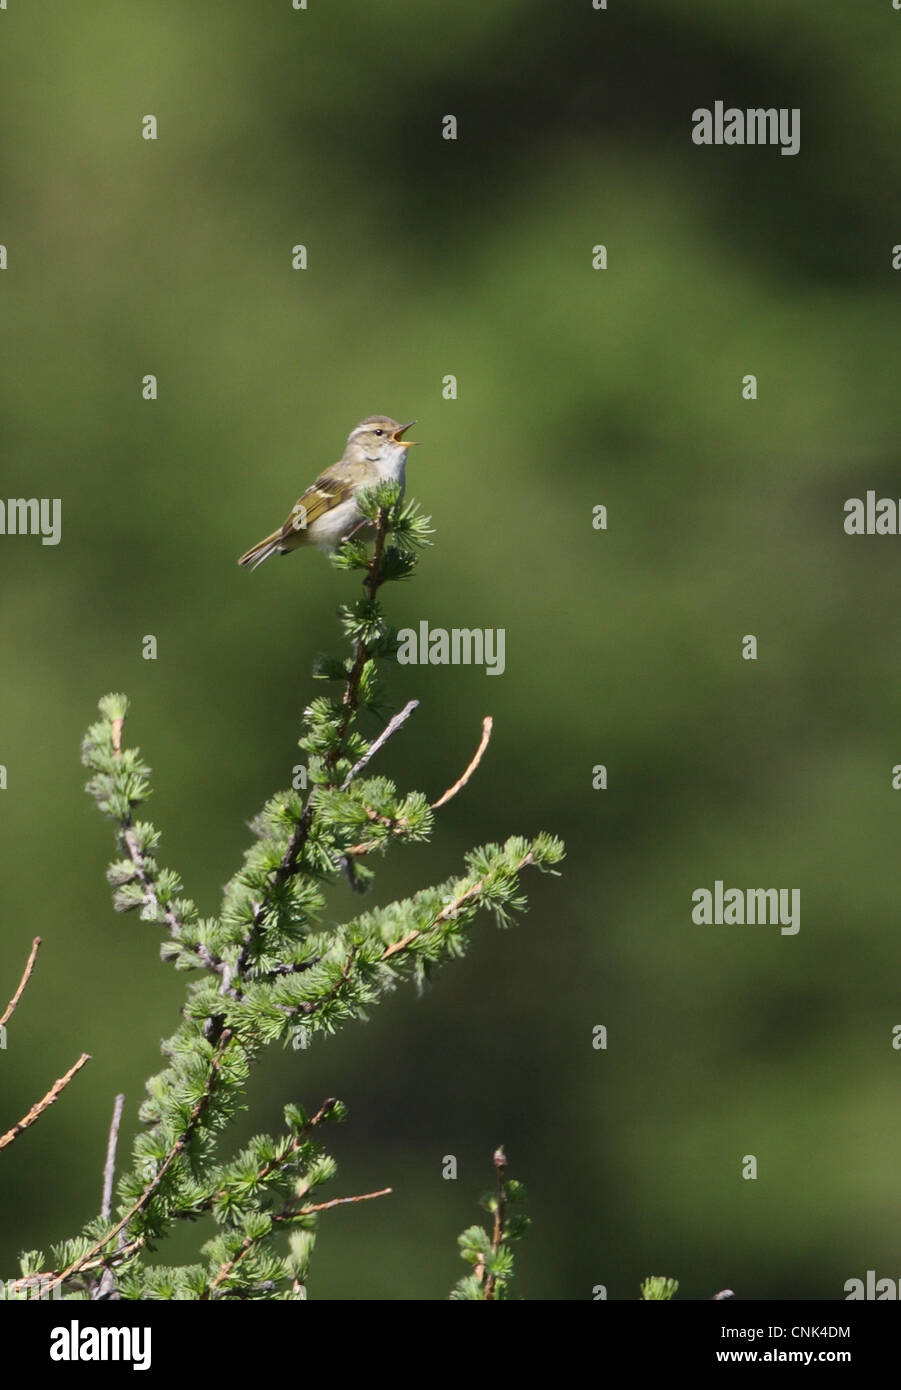 Chinese Leaf-warbler (Phylloscopus yunnanensis) adult male, singing, perched at top of tree, Old Peak, Hebei, China, Stock Photo